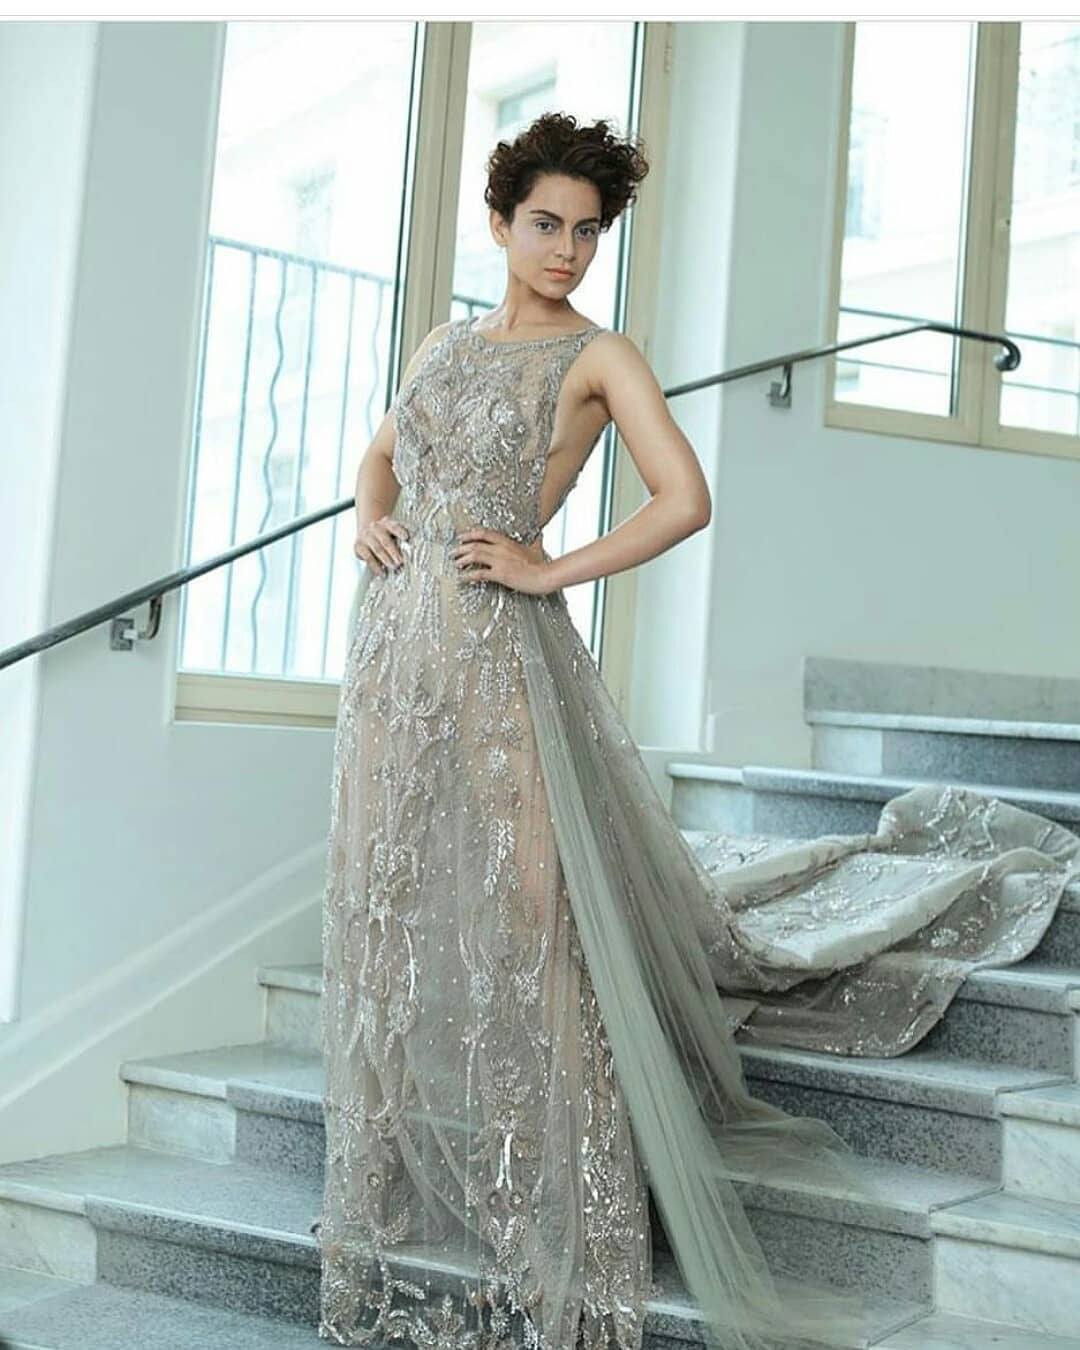 1 kangana naked dress bollywood